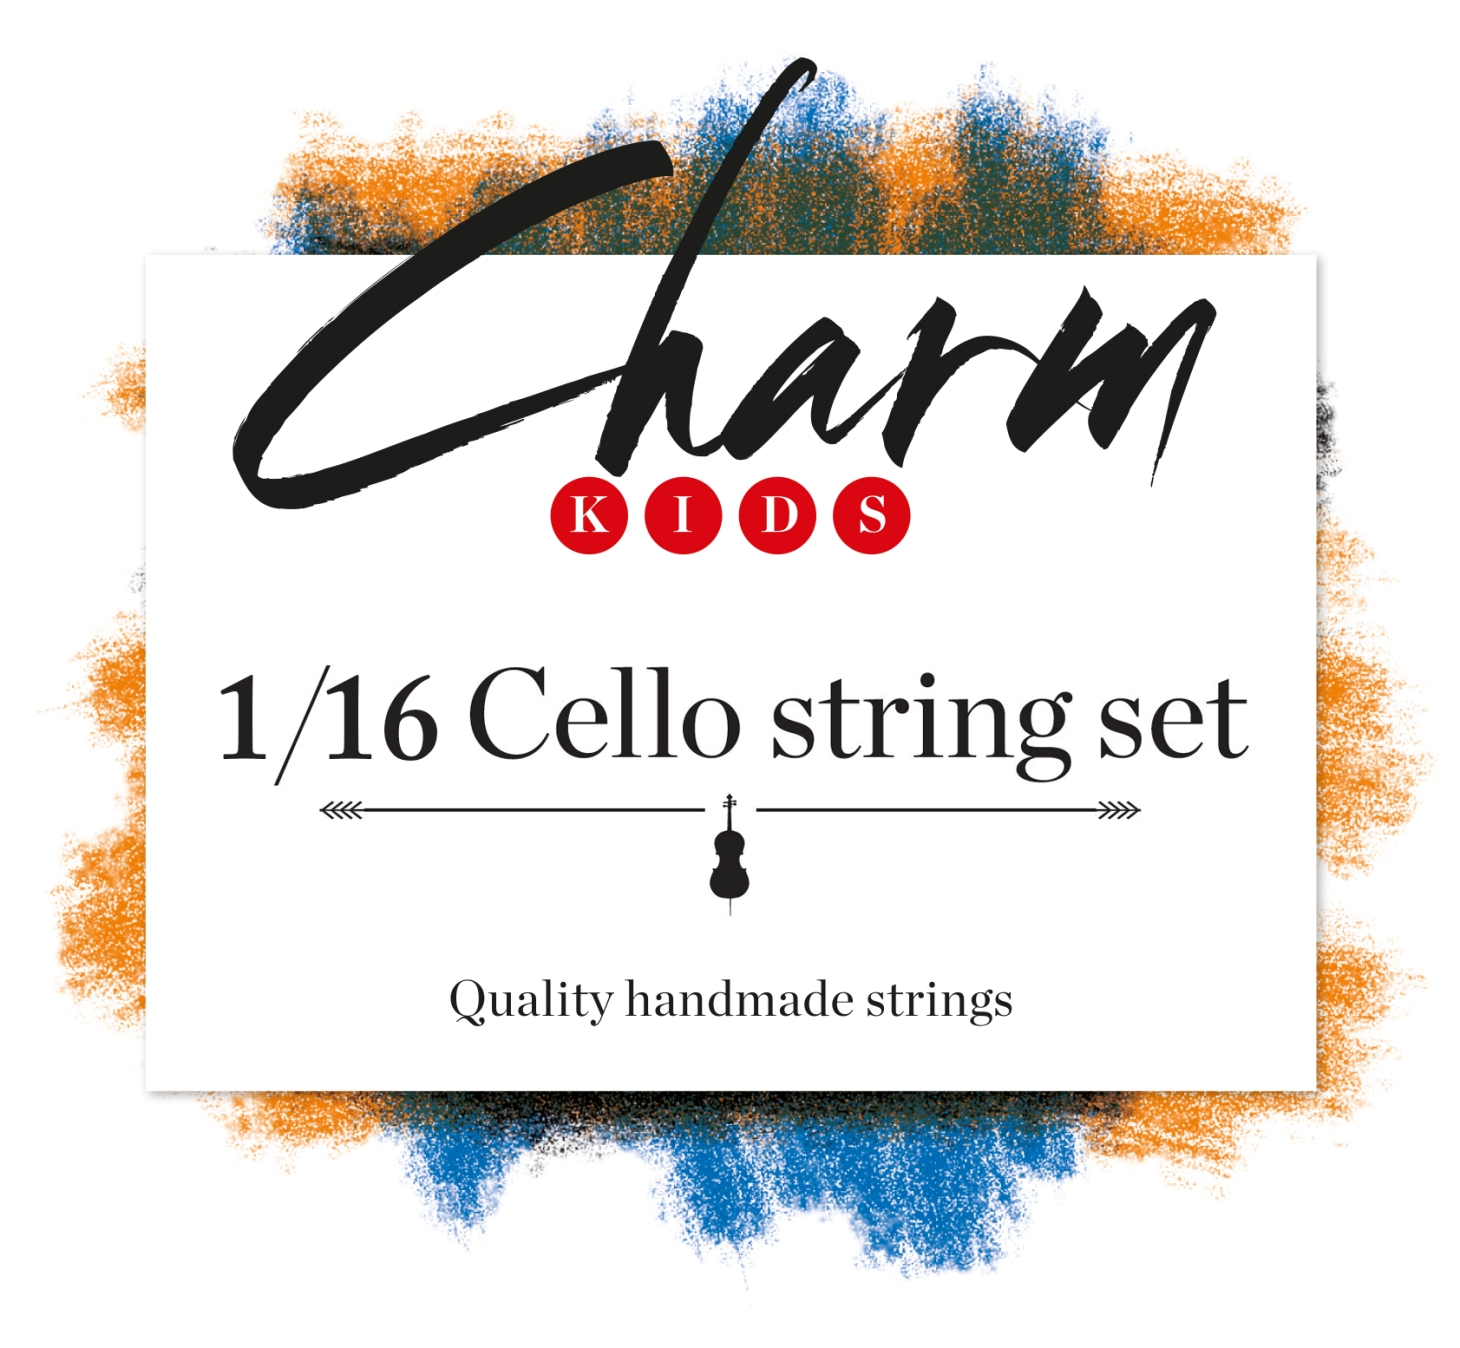 Charm Kids Cello 1/16